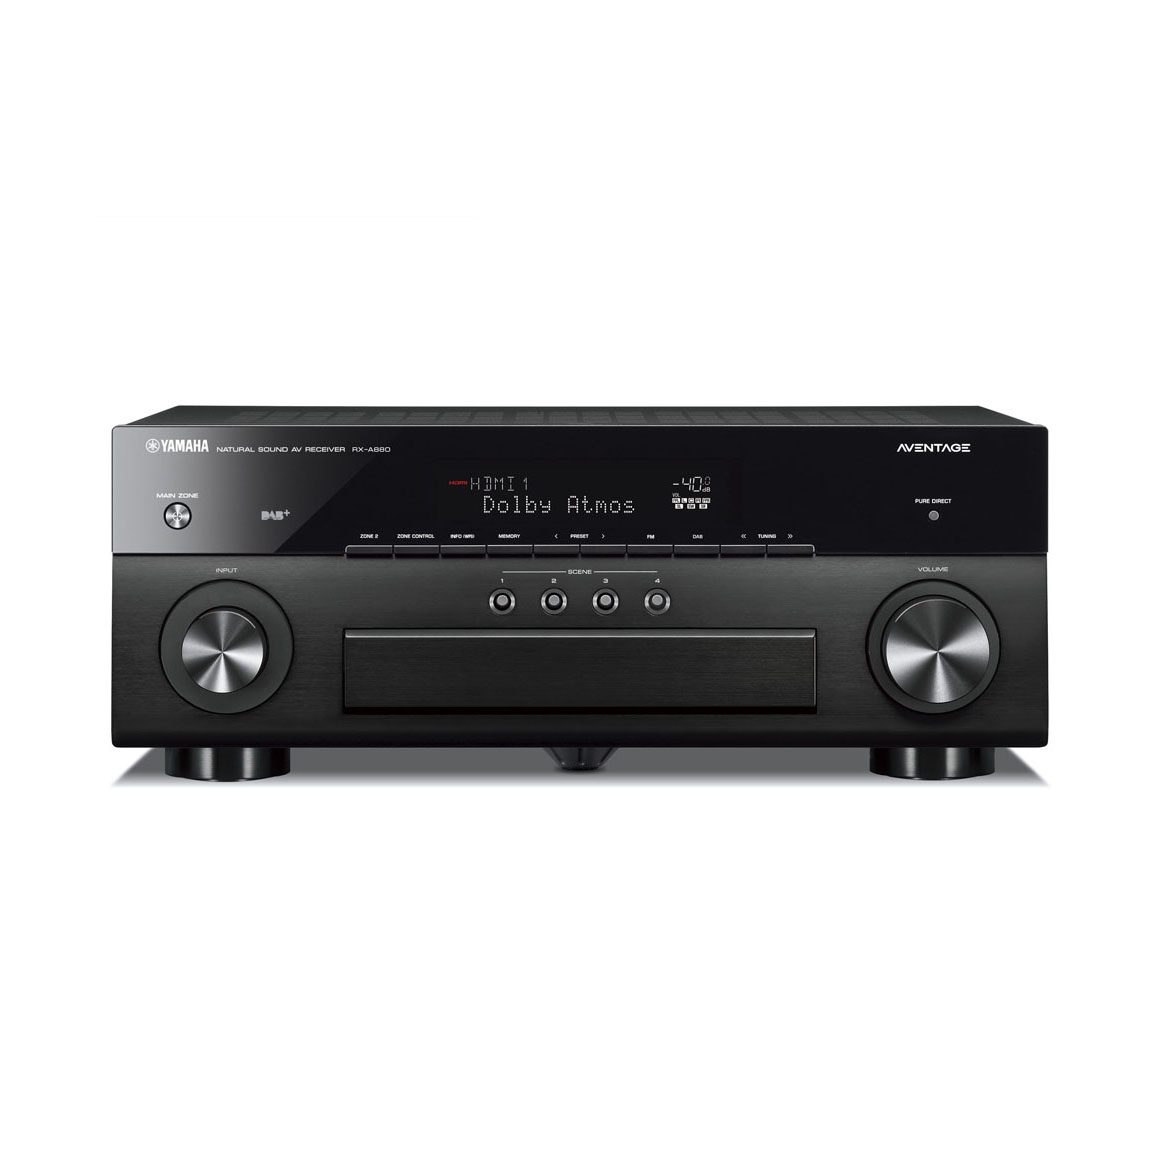 rx a880 av receivers yamaha music online shop. Black Bedroom Furniture Sets. Home Design Ideas